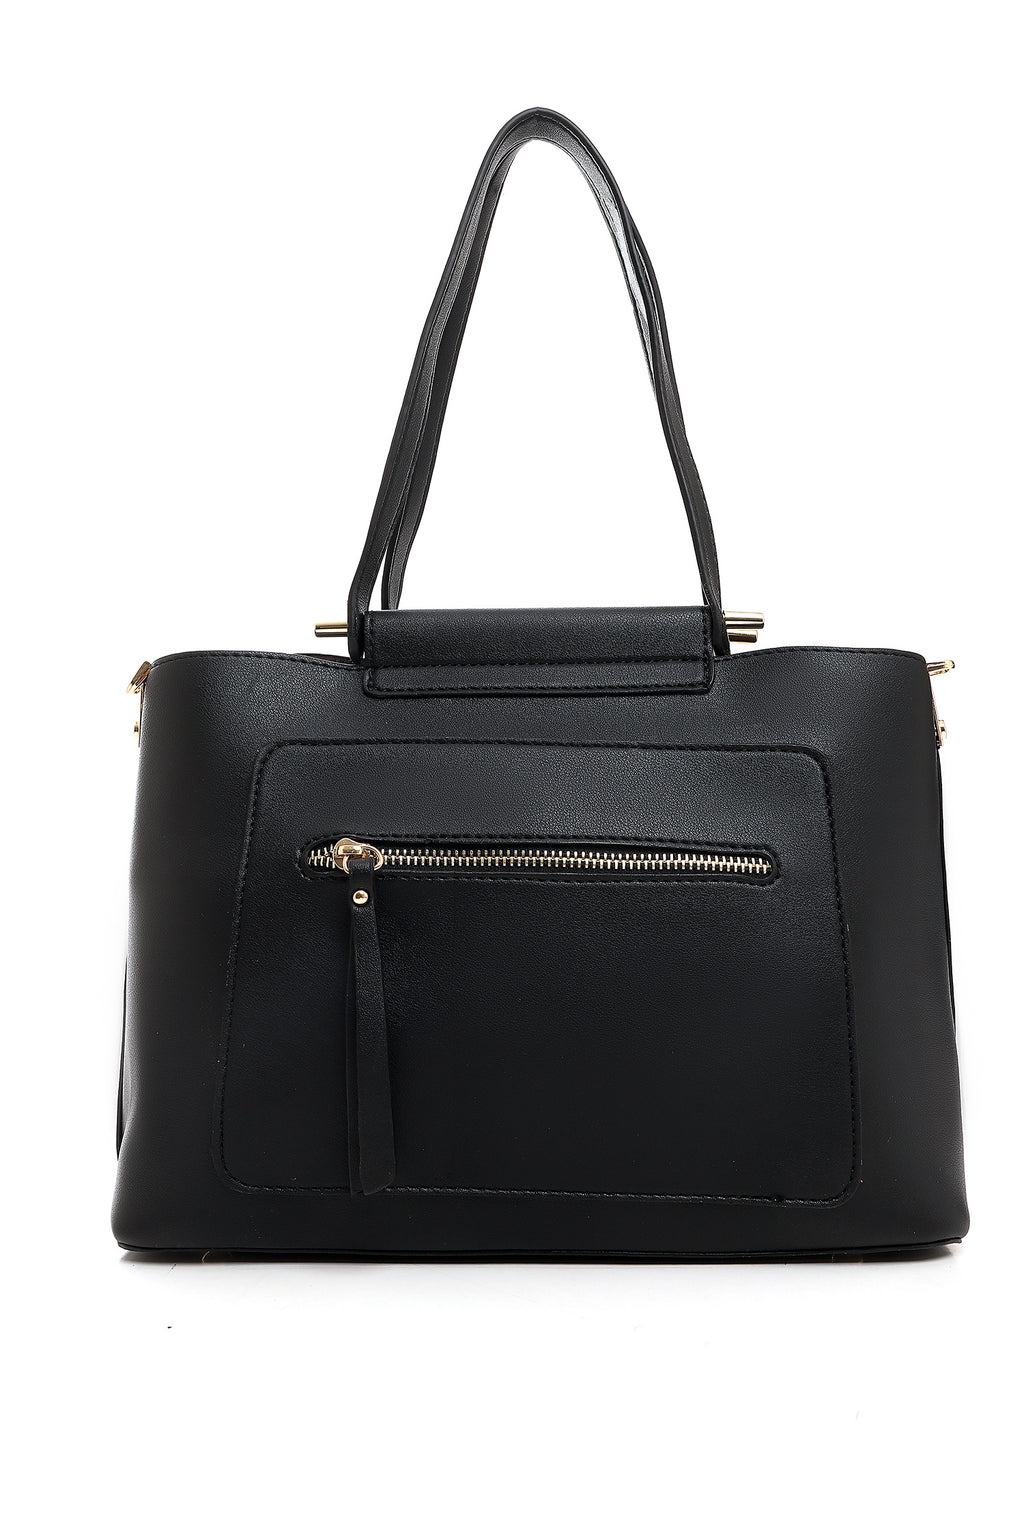 CITY BAG-BLACK